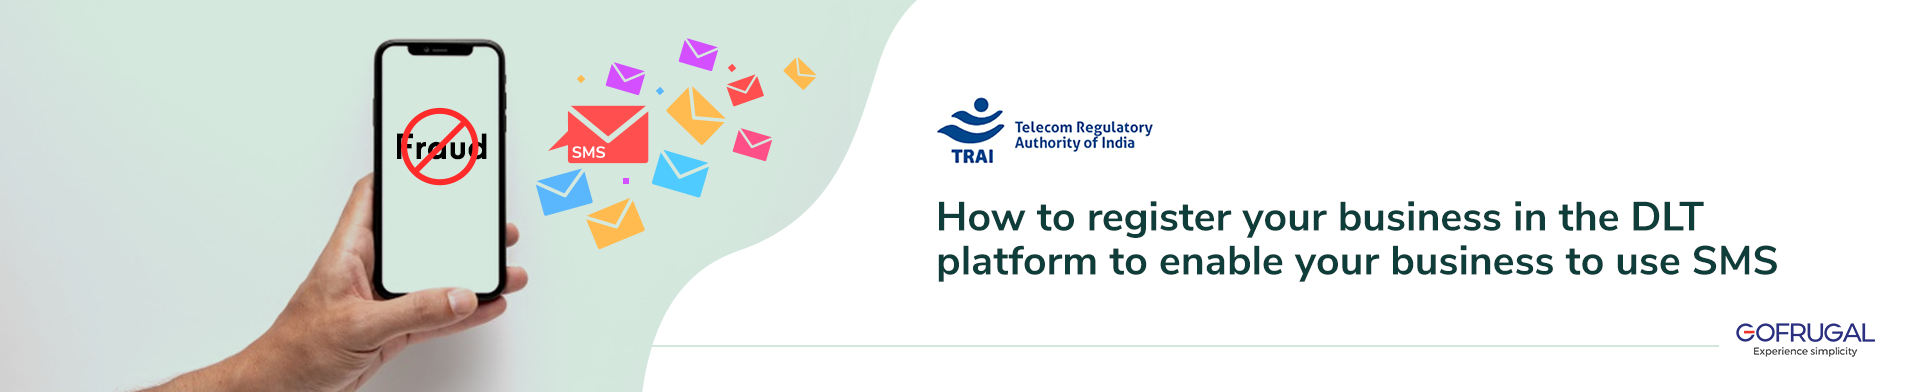 How to register on the DLT platform in order to send SMS